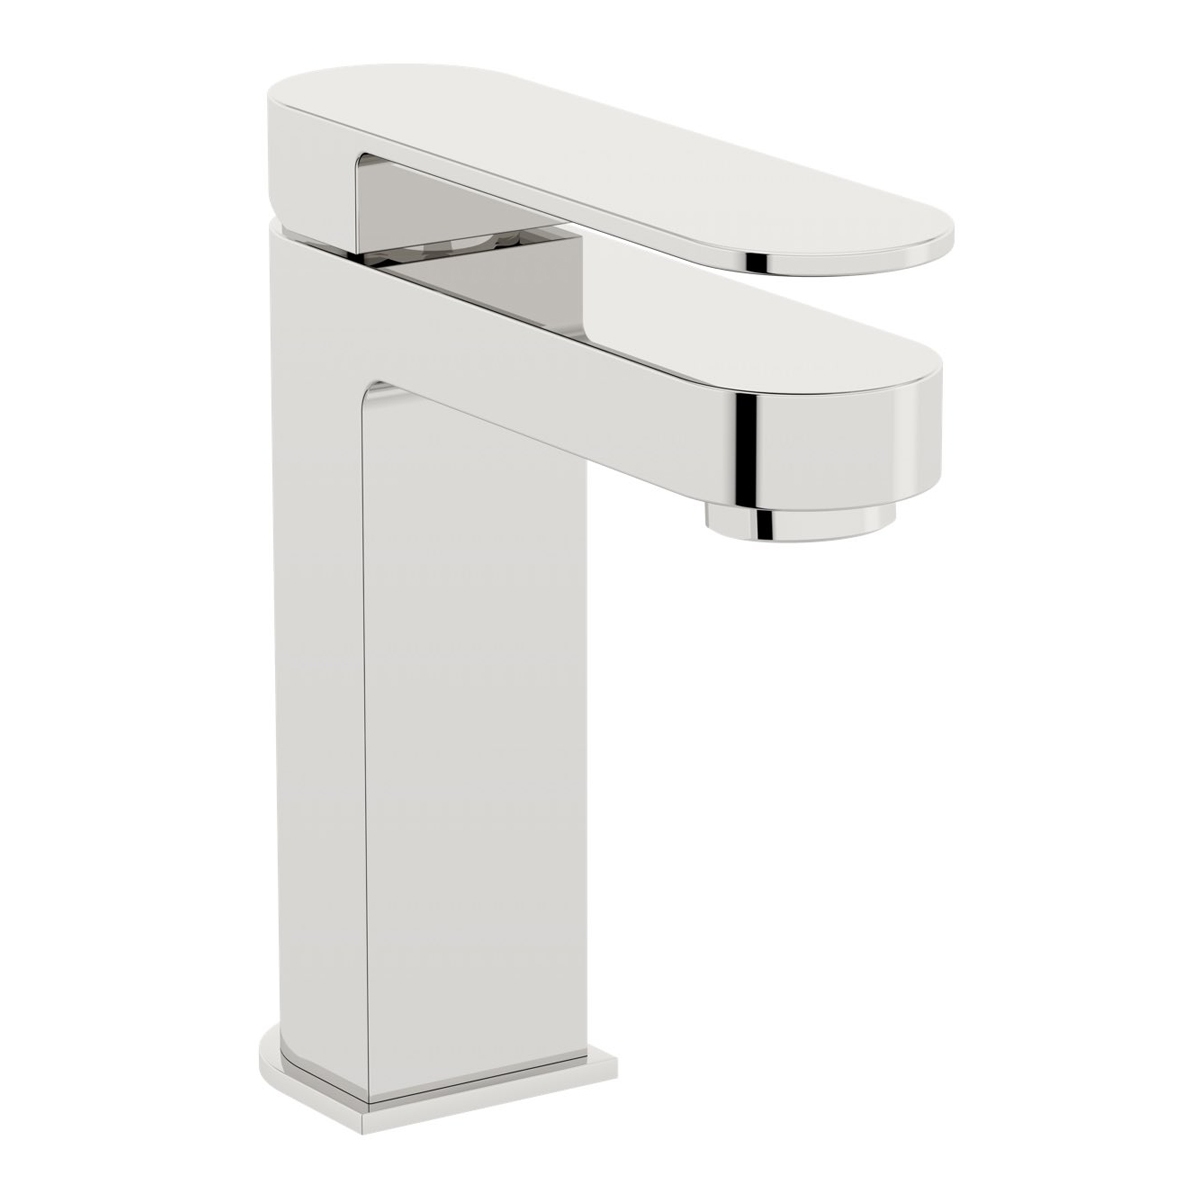 Image of Stanford Basin Mixer